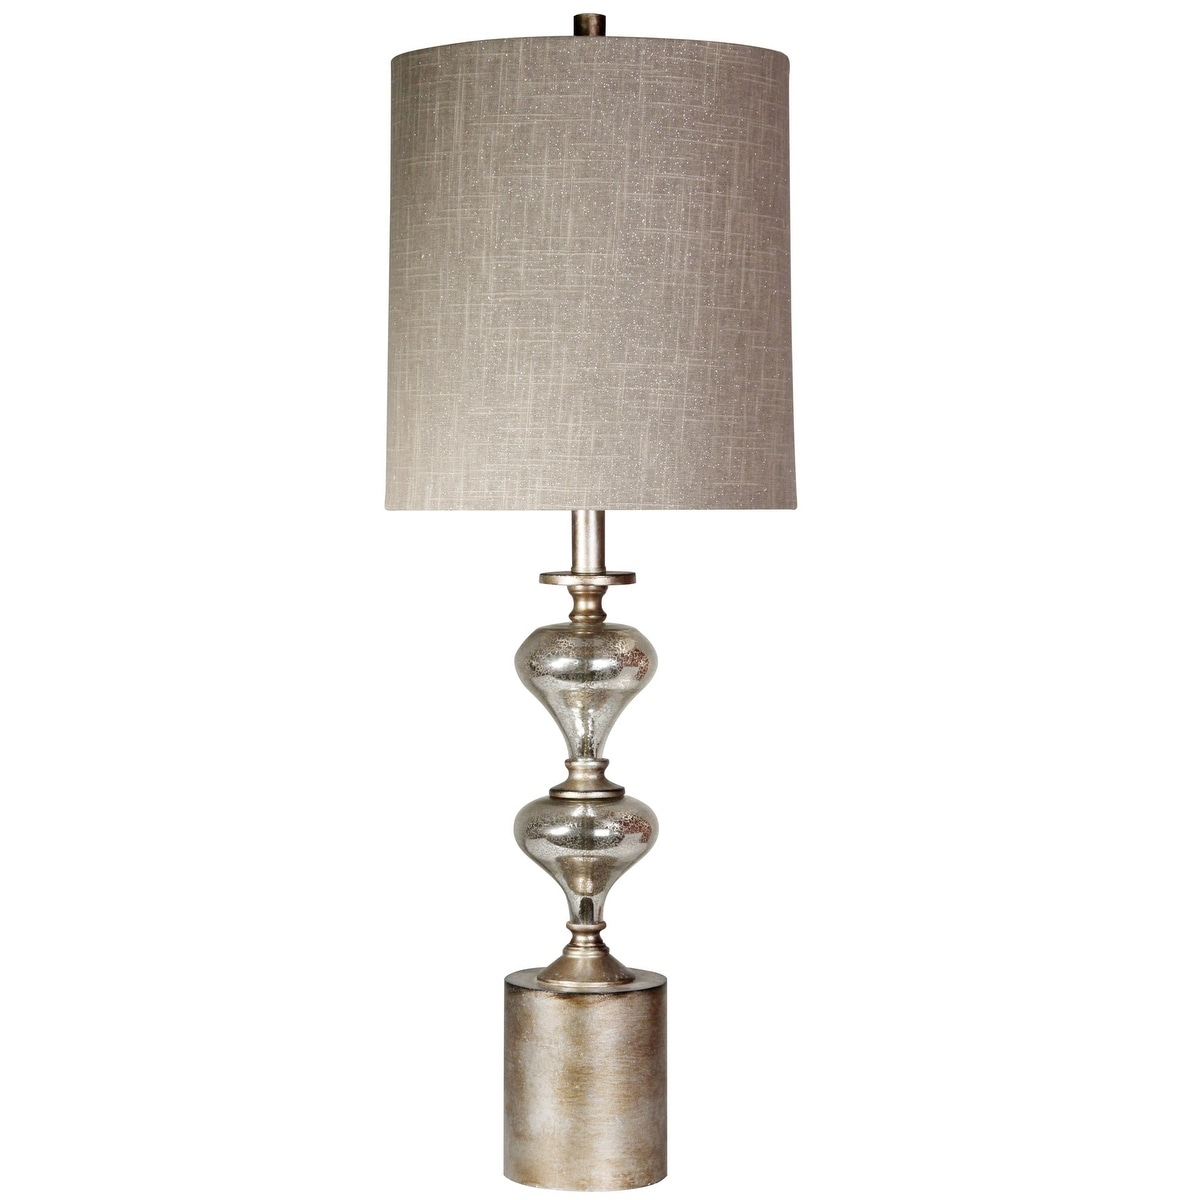 Delacora Sc L33452 Milam 34 Tall Buffet Table Lamp With Hardback Fabric Shade Mercury Overstock 25653082